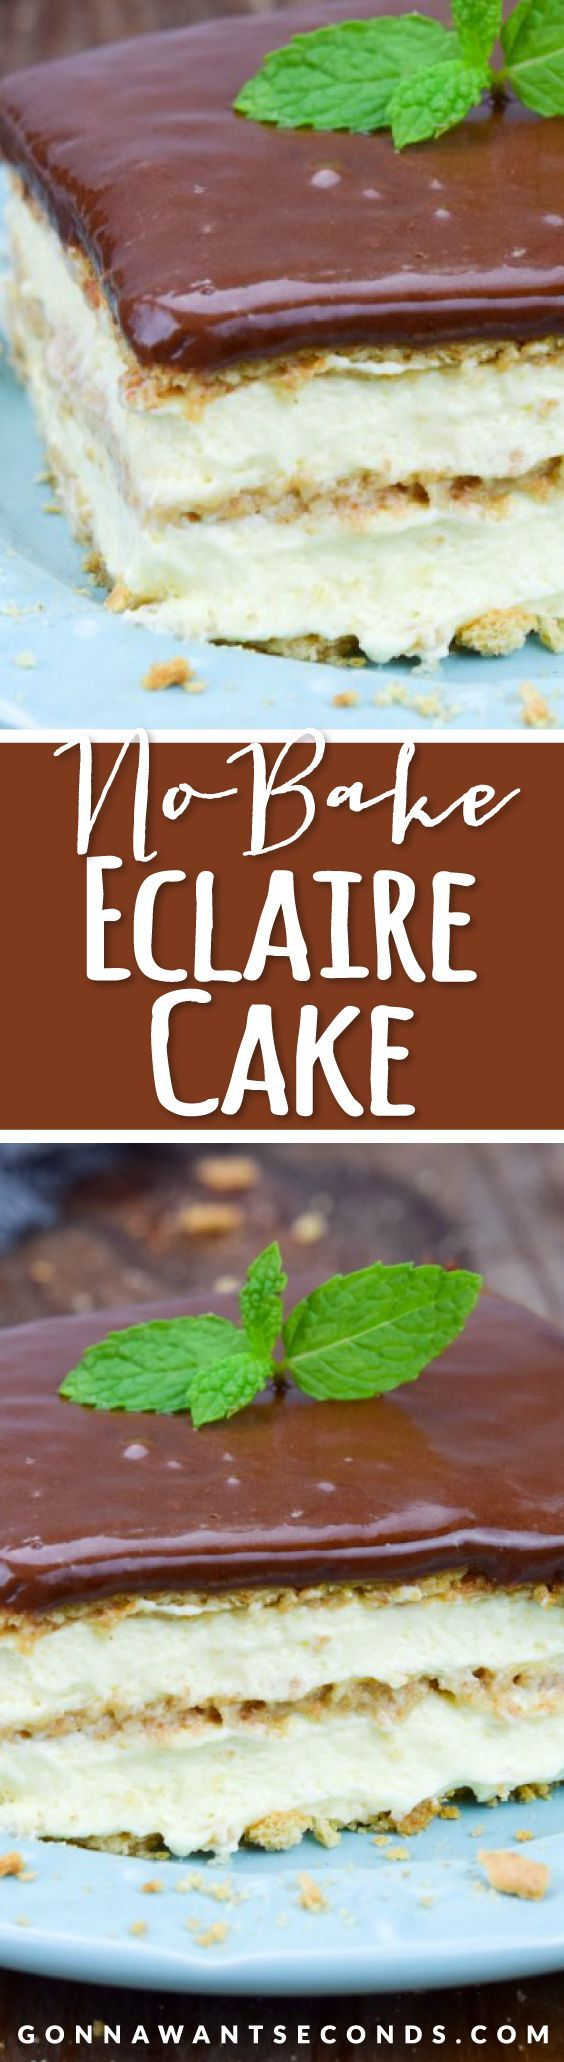 This scrumptious No Bake Eclair Cake is a snap to make and you won't believe how delicious it turns out!!!